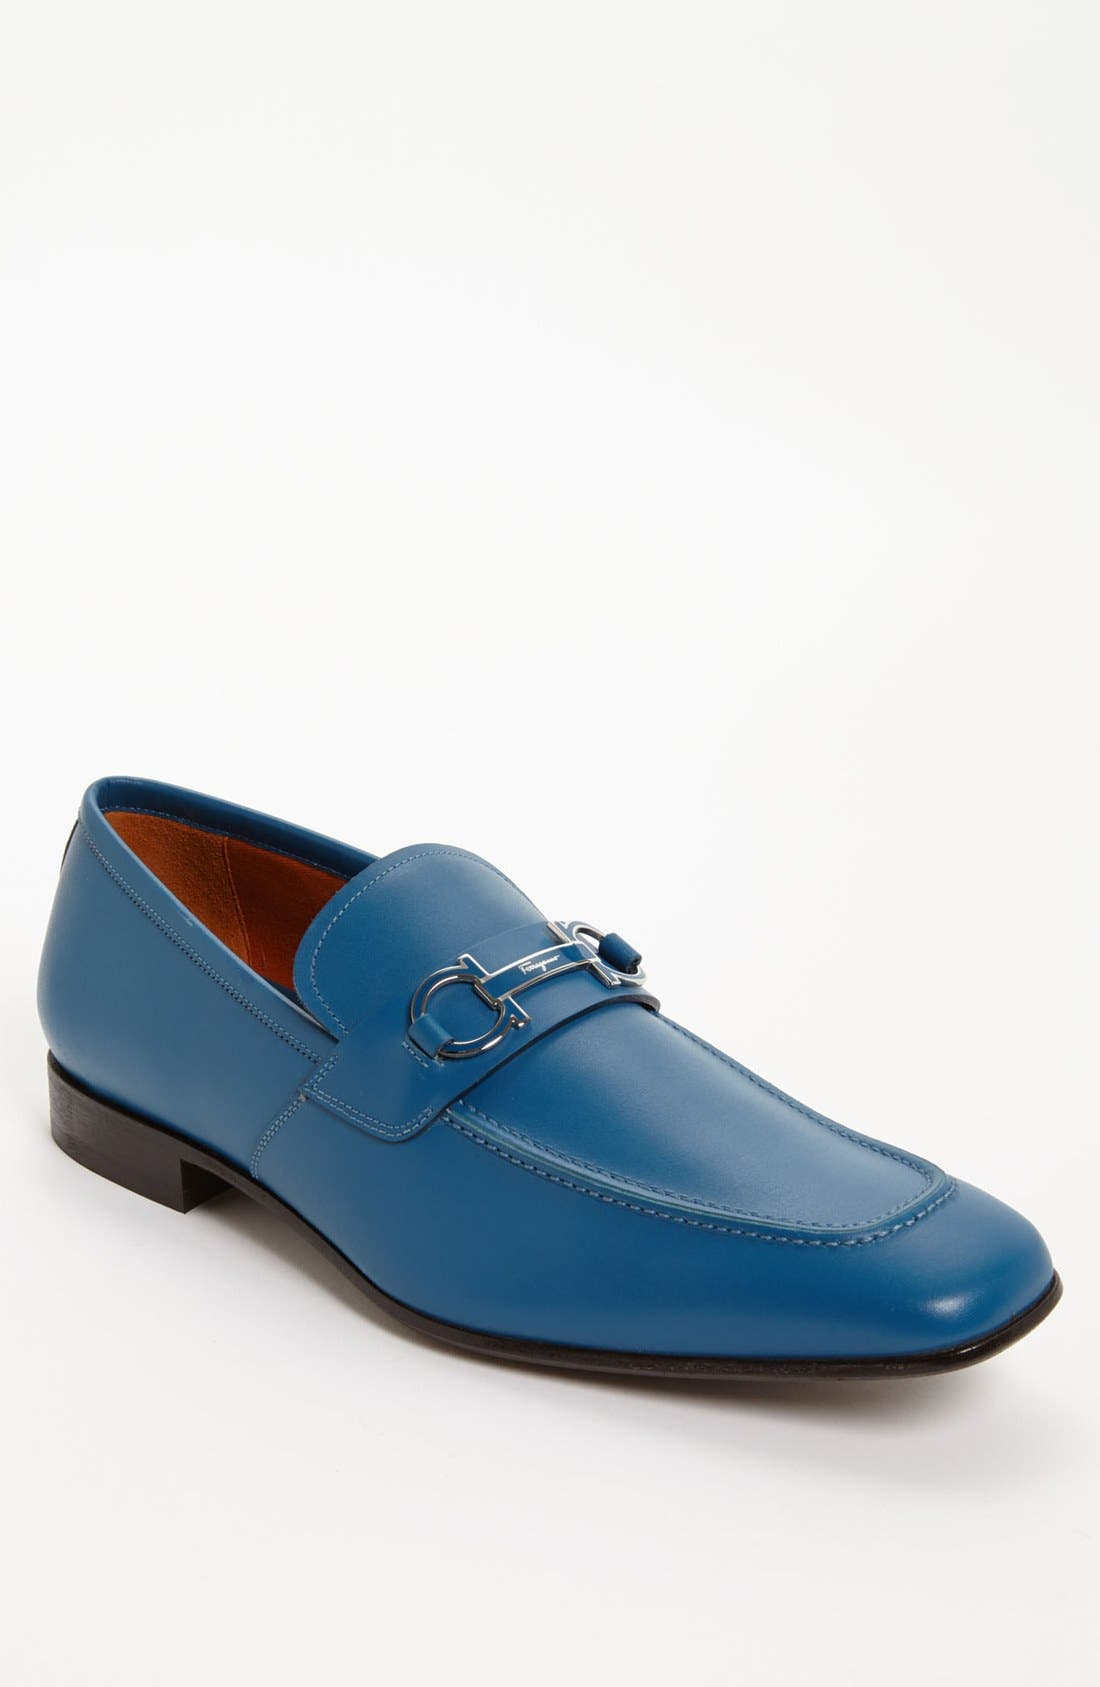 Alternate Image 1 Selected - Salvatore Ferragamo 'Tribute' Bit Loafer